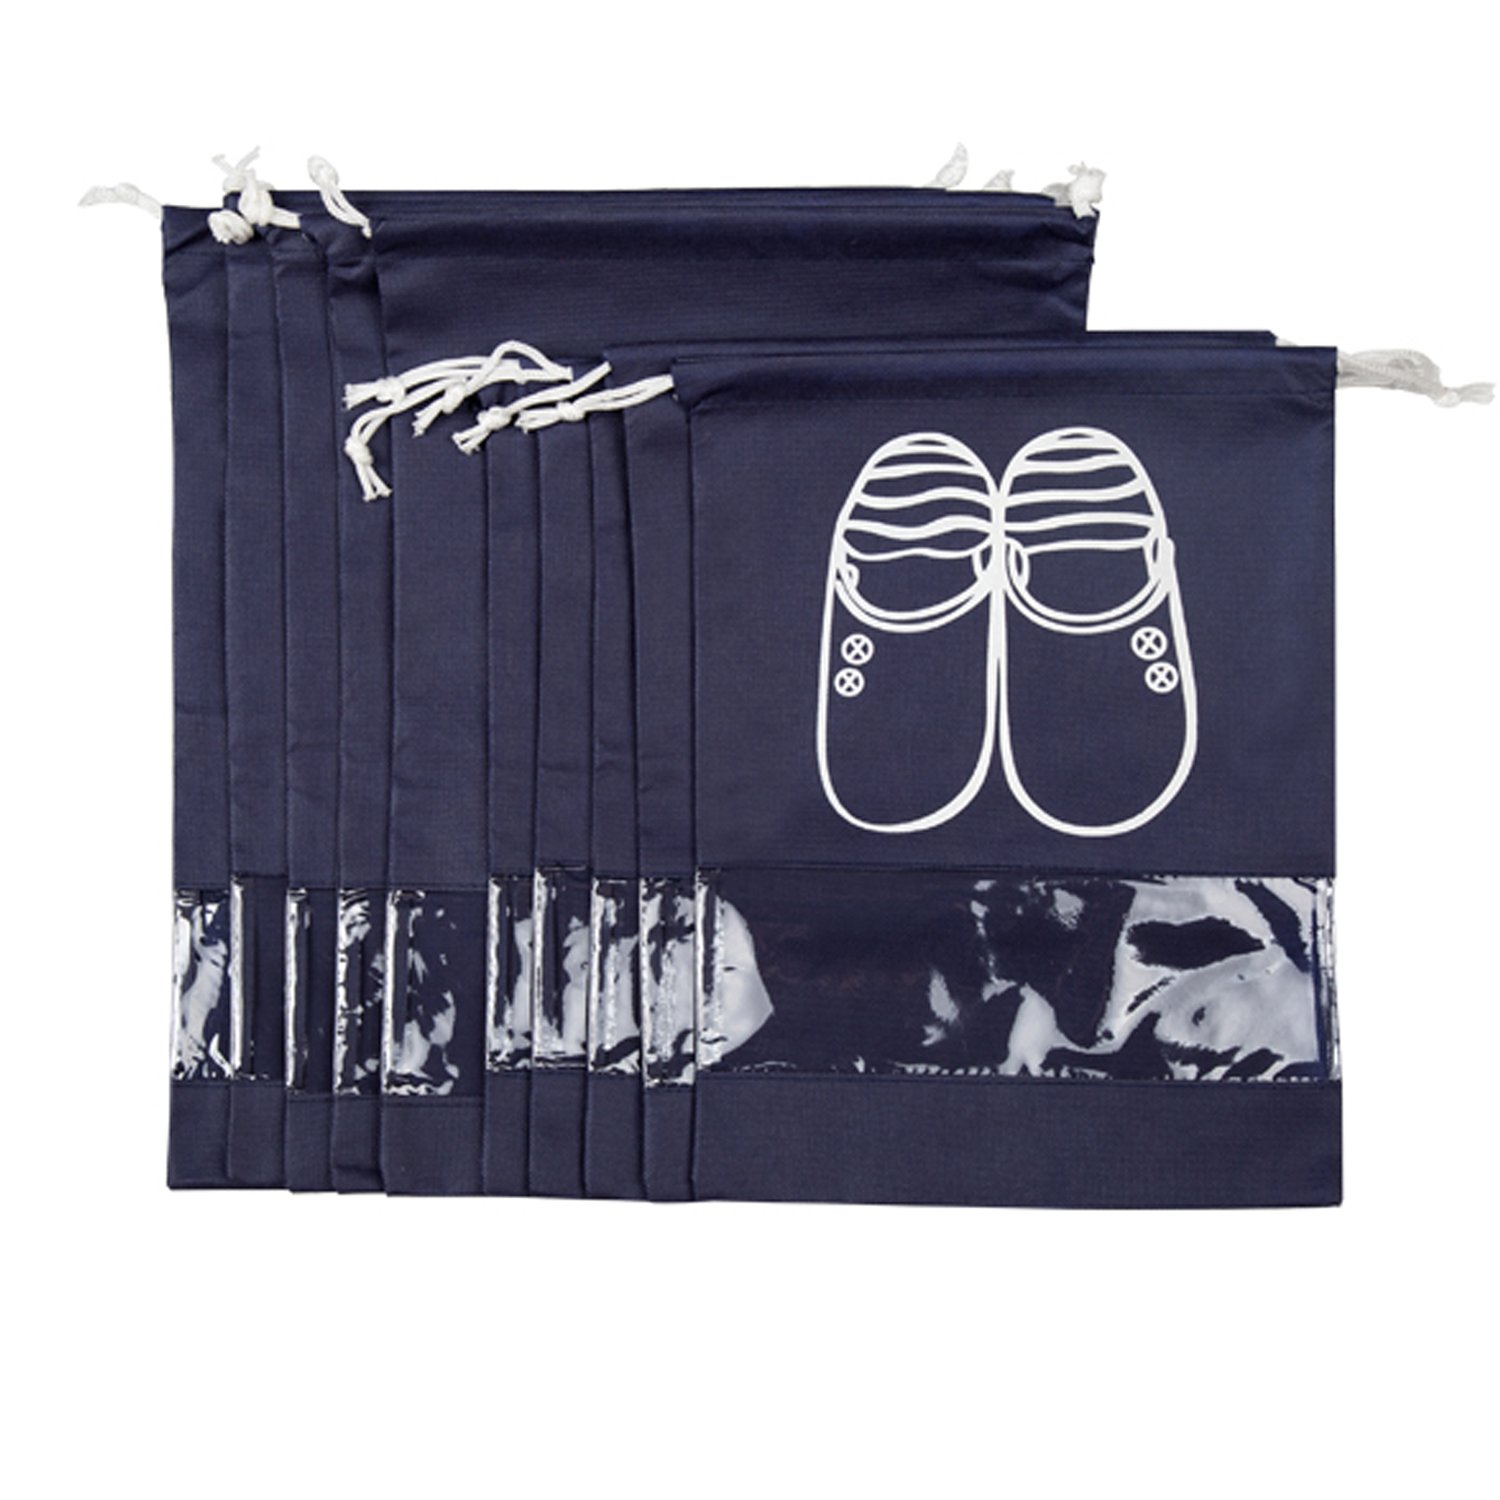 ZUYEE Travel Shoe Bags for Women Men with Clear View Window Drawstring 10 PCS (Navy)